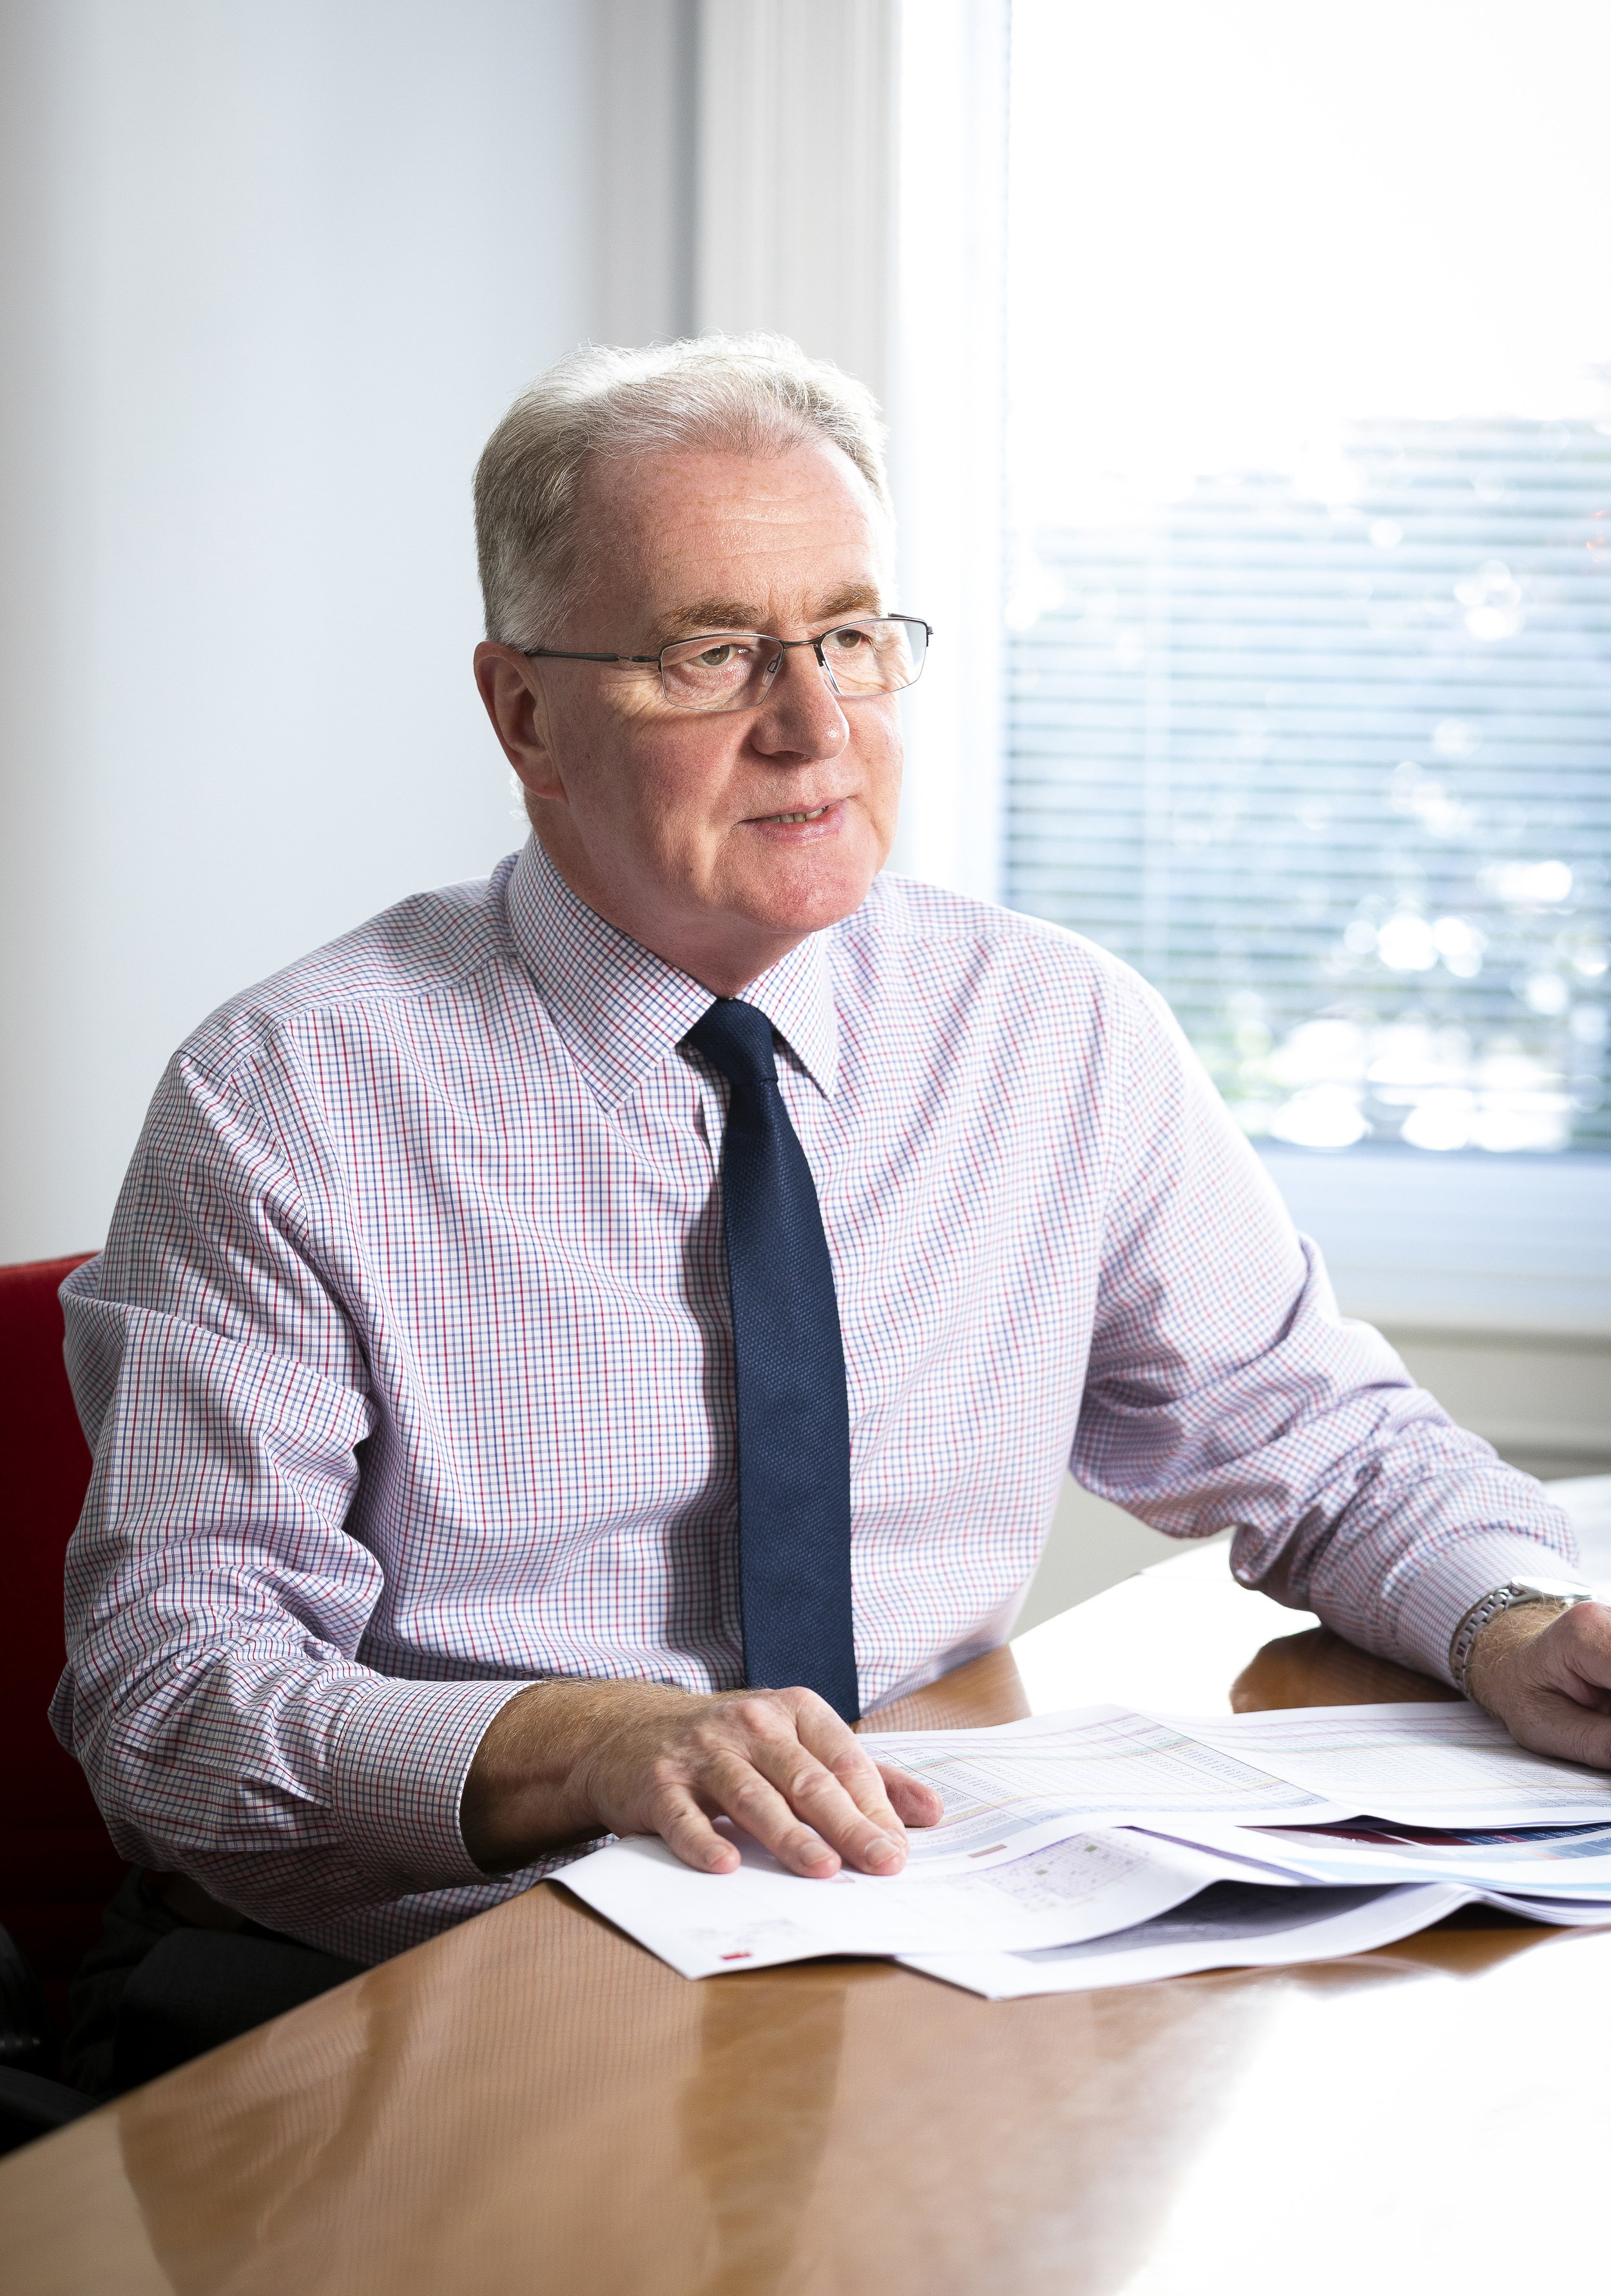 Gerry Hughes  Managing Director - Asset Management and Briefing Consultancy Director -  MRICS, MAPM   email; ghughes@hughesmcmichael.com